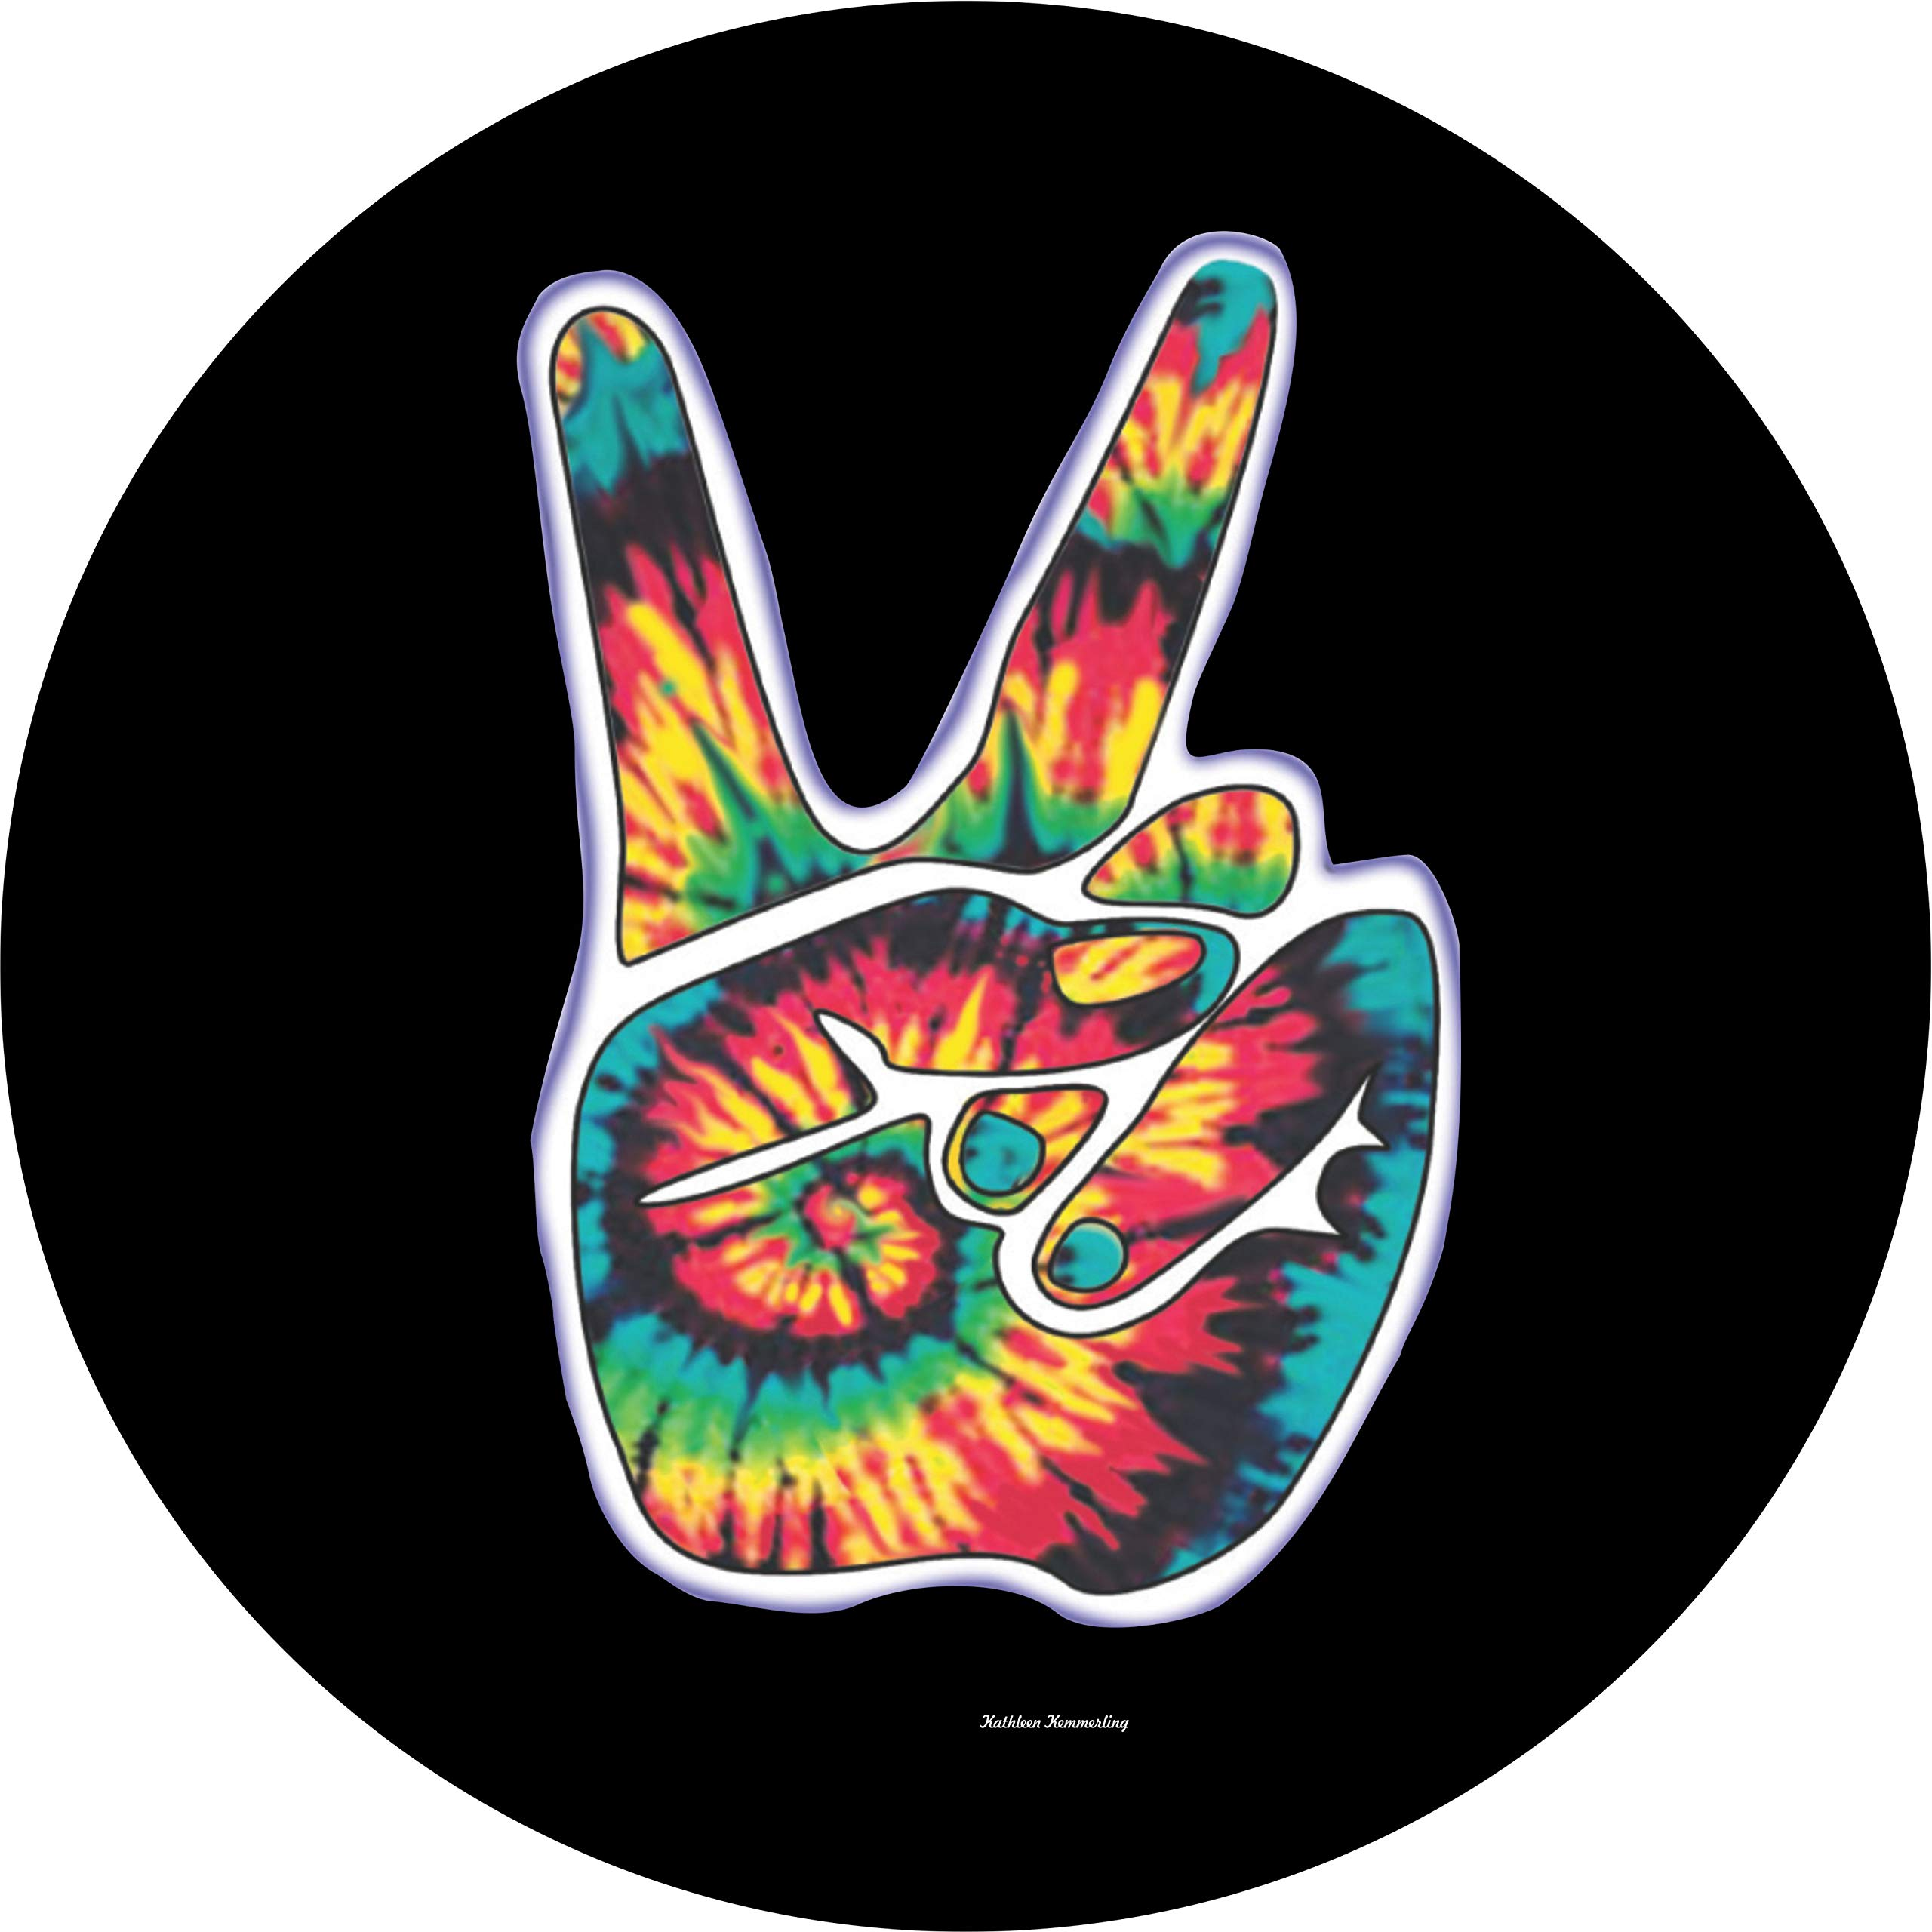 TIRE COVER CENTRAL Peace Sign Hand Tie dye on Black Spare Tire Cover for 235/70R16 fits Camper, Jeep, RV, Scamp, Trailer (Drop Down Size menu by TIRE COVER CENTRAL